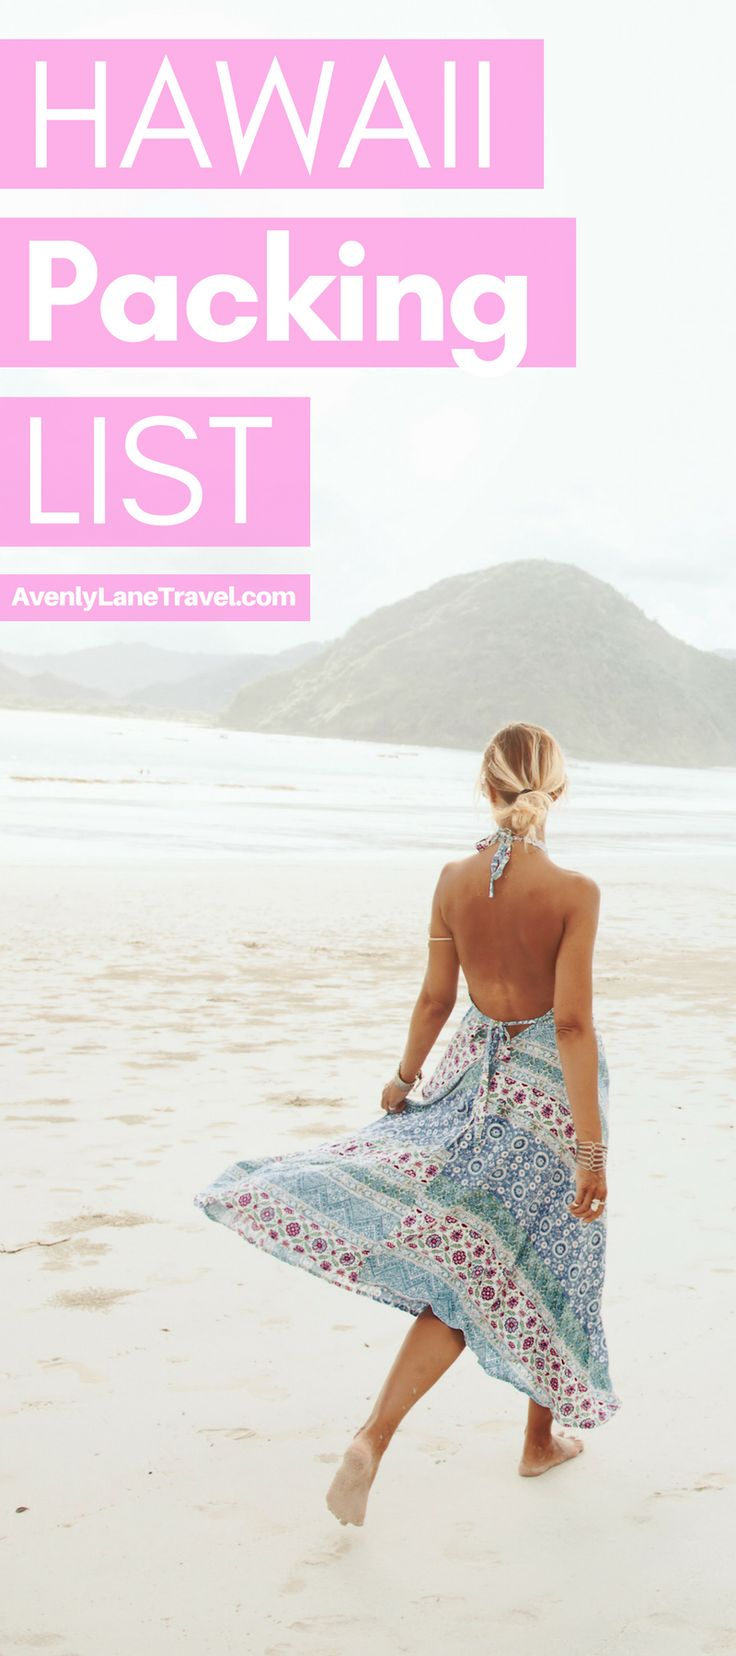 Are you planning a trip to Hawaii and not sure what to bring? This Hawaii packing list will help you get organized for your beach vacation. It covers the best Hawaii beach wear, outfits, shoes, dresses for Hawaii, electronics and even toiletries I recommend for Hawaii. Read the full article on Avenlylanetravel.com | #hawaii #Islands #packinglist #travel #beaches